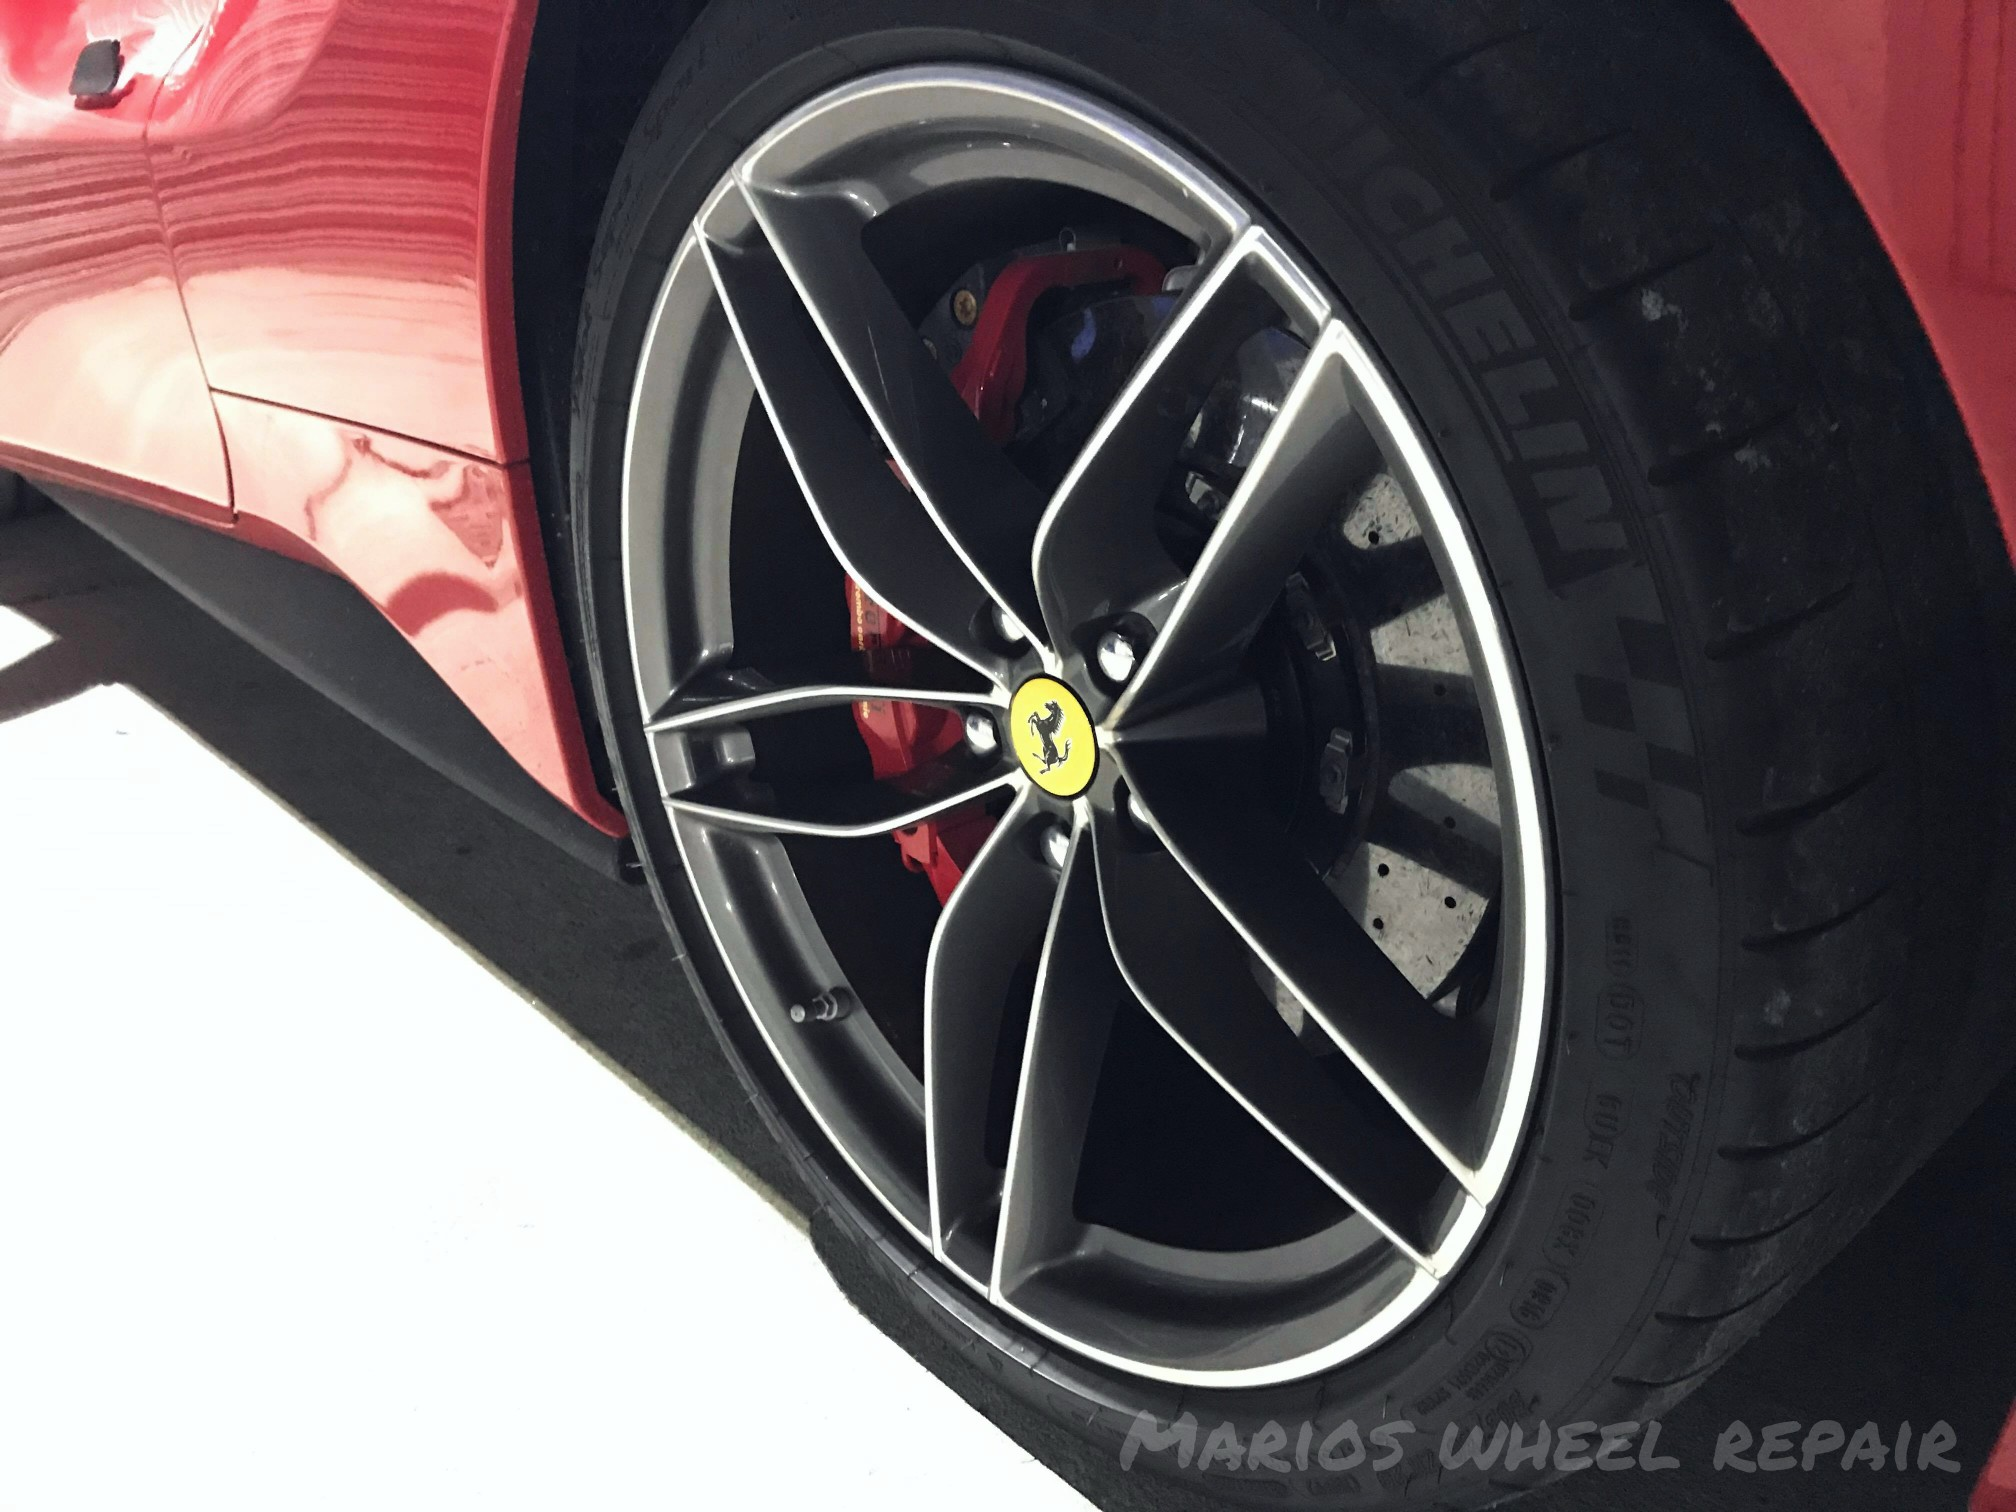 Diamond cutting is a precise process that takes much longer than regular alloy wheel refurbishment and can only be done several times as a ridiculous amount of alloy would eventually fade away.